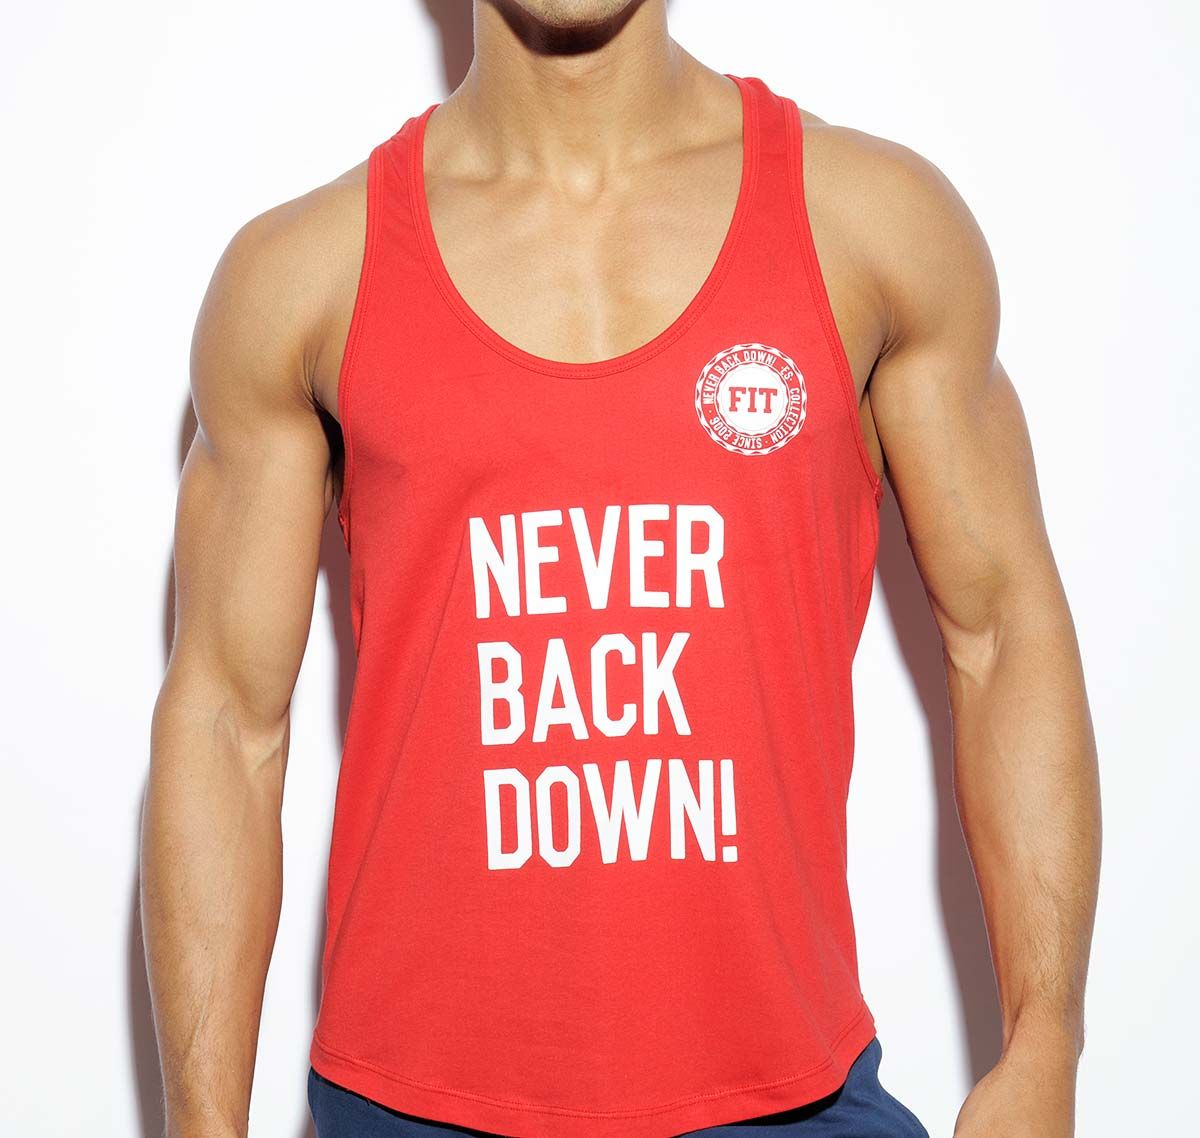 ES Collection NEVER BACK DOWN TANK TOP TS169, rot